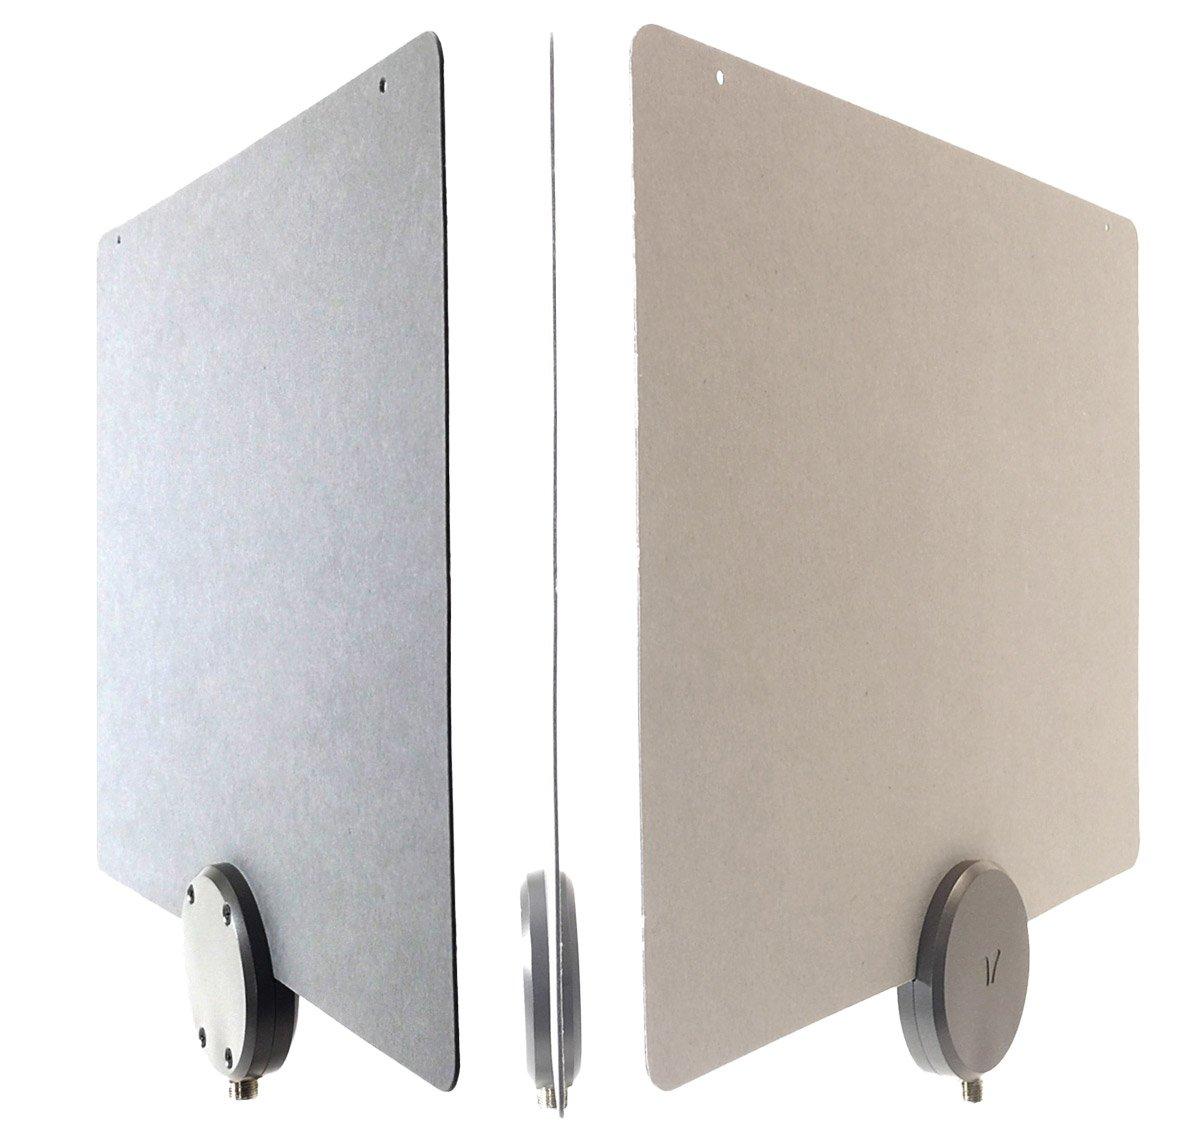 Mohu ReLeaf Indoor TV Antenna, Made with Recycled Materials, 4K-Ready HDTV, 30 Mile Range